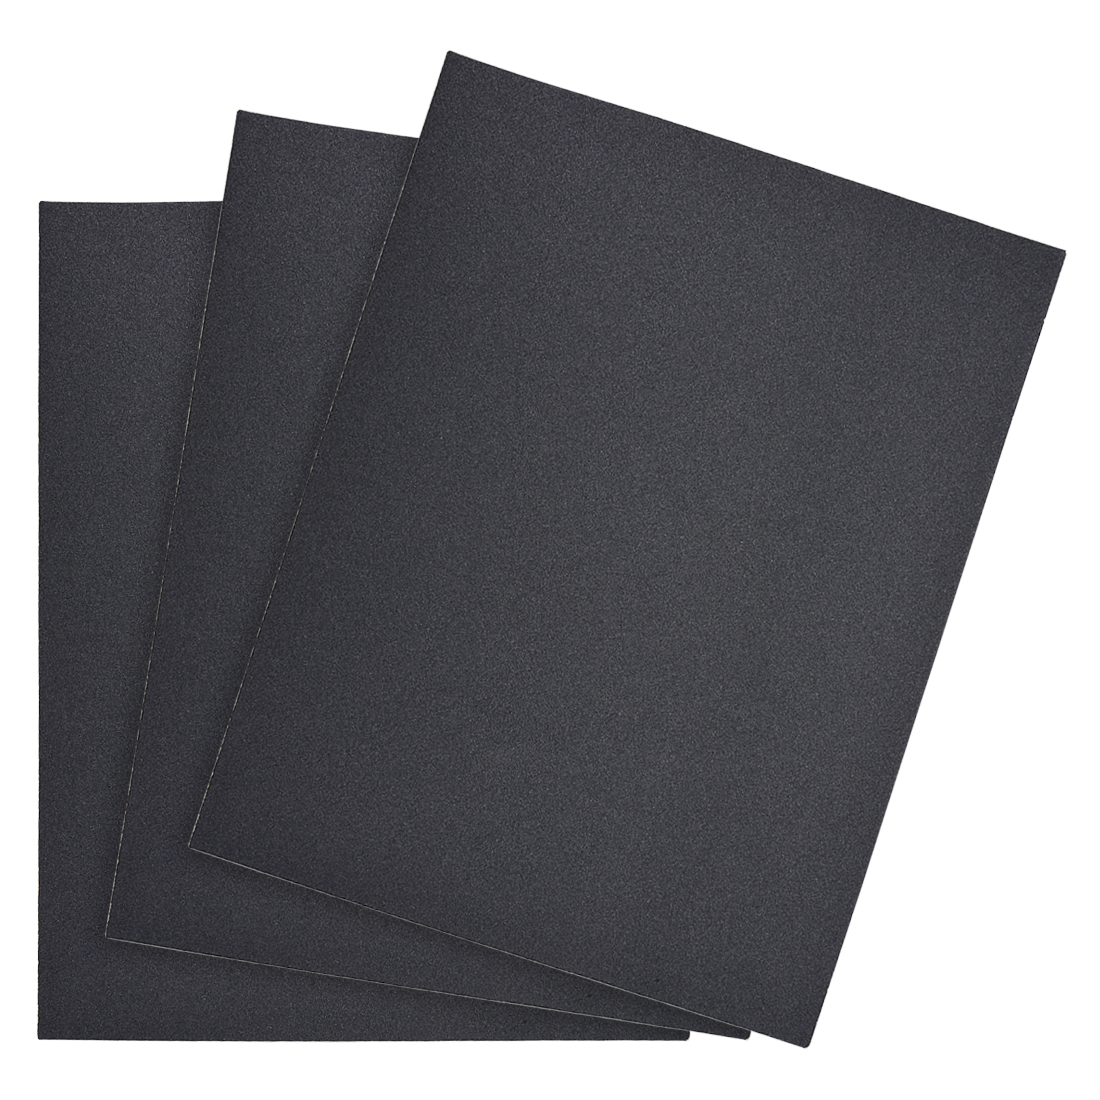 Waterproof Sandpaper, Wet Dry Sand Paper Grit of 220, 11 x 9inch 3pcs